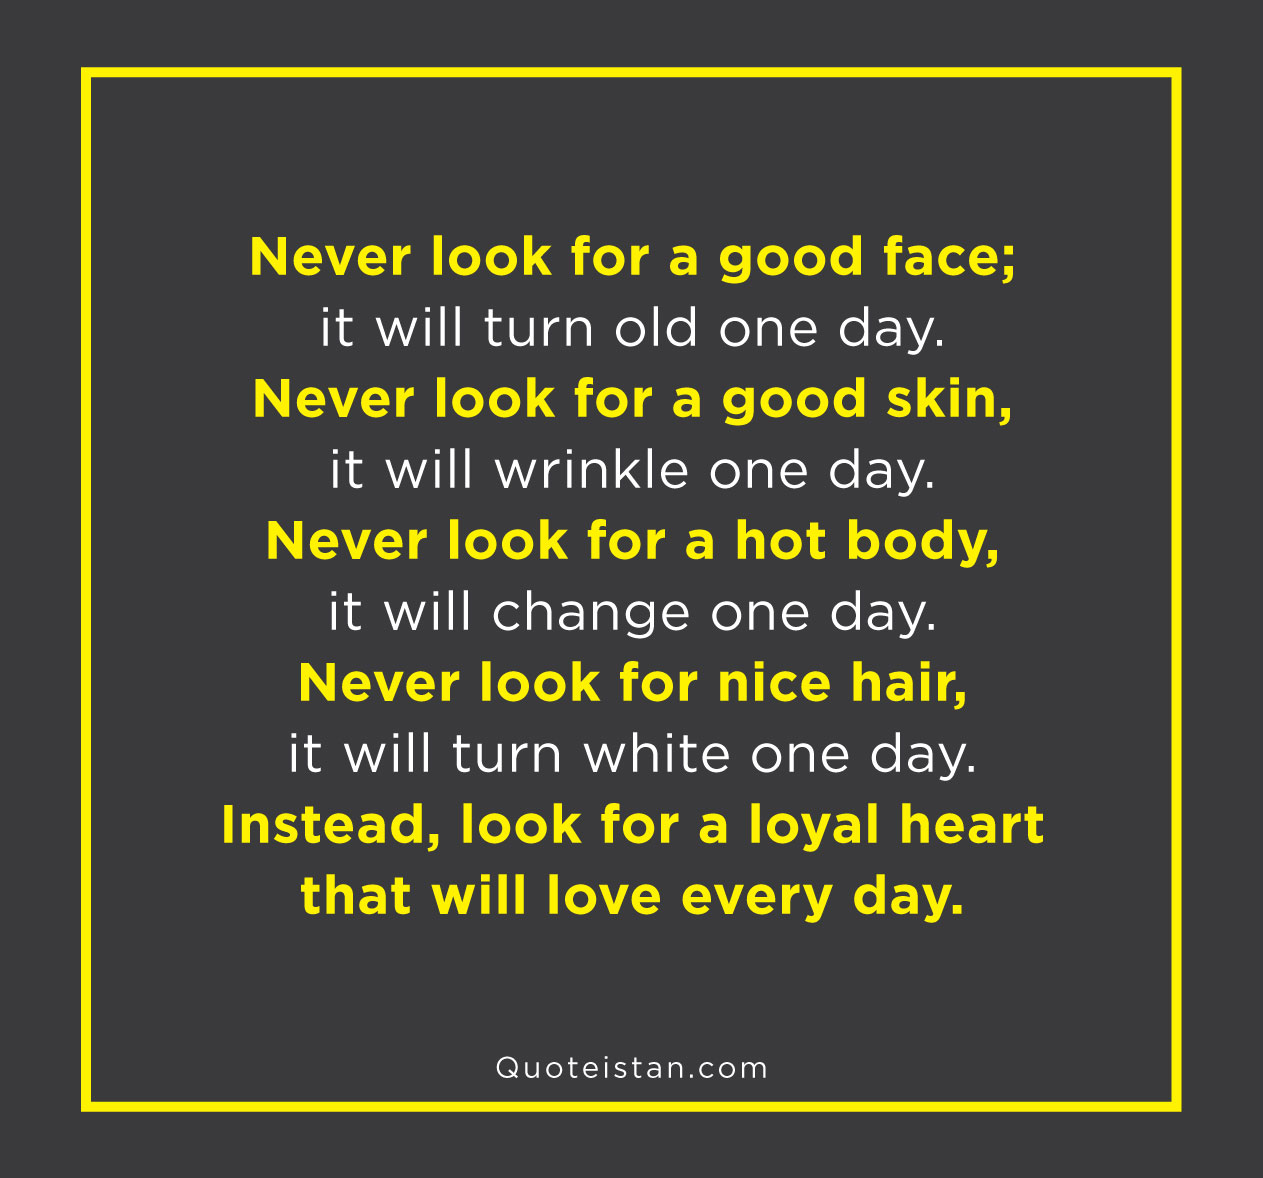 Never look for a good face; it will turn old one day. Never look for a good skin, it will wrinkle one day. Never look for a hot body, it will change one day. Never look for nice hair, it will turn white one day. Instead, look for a loyal heart that will love every day.